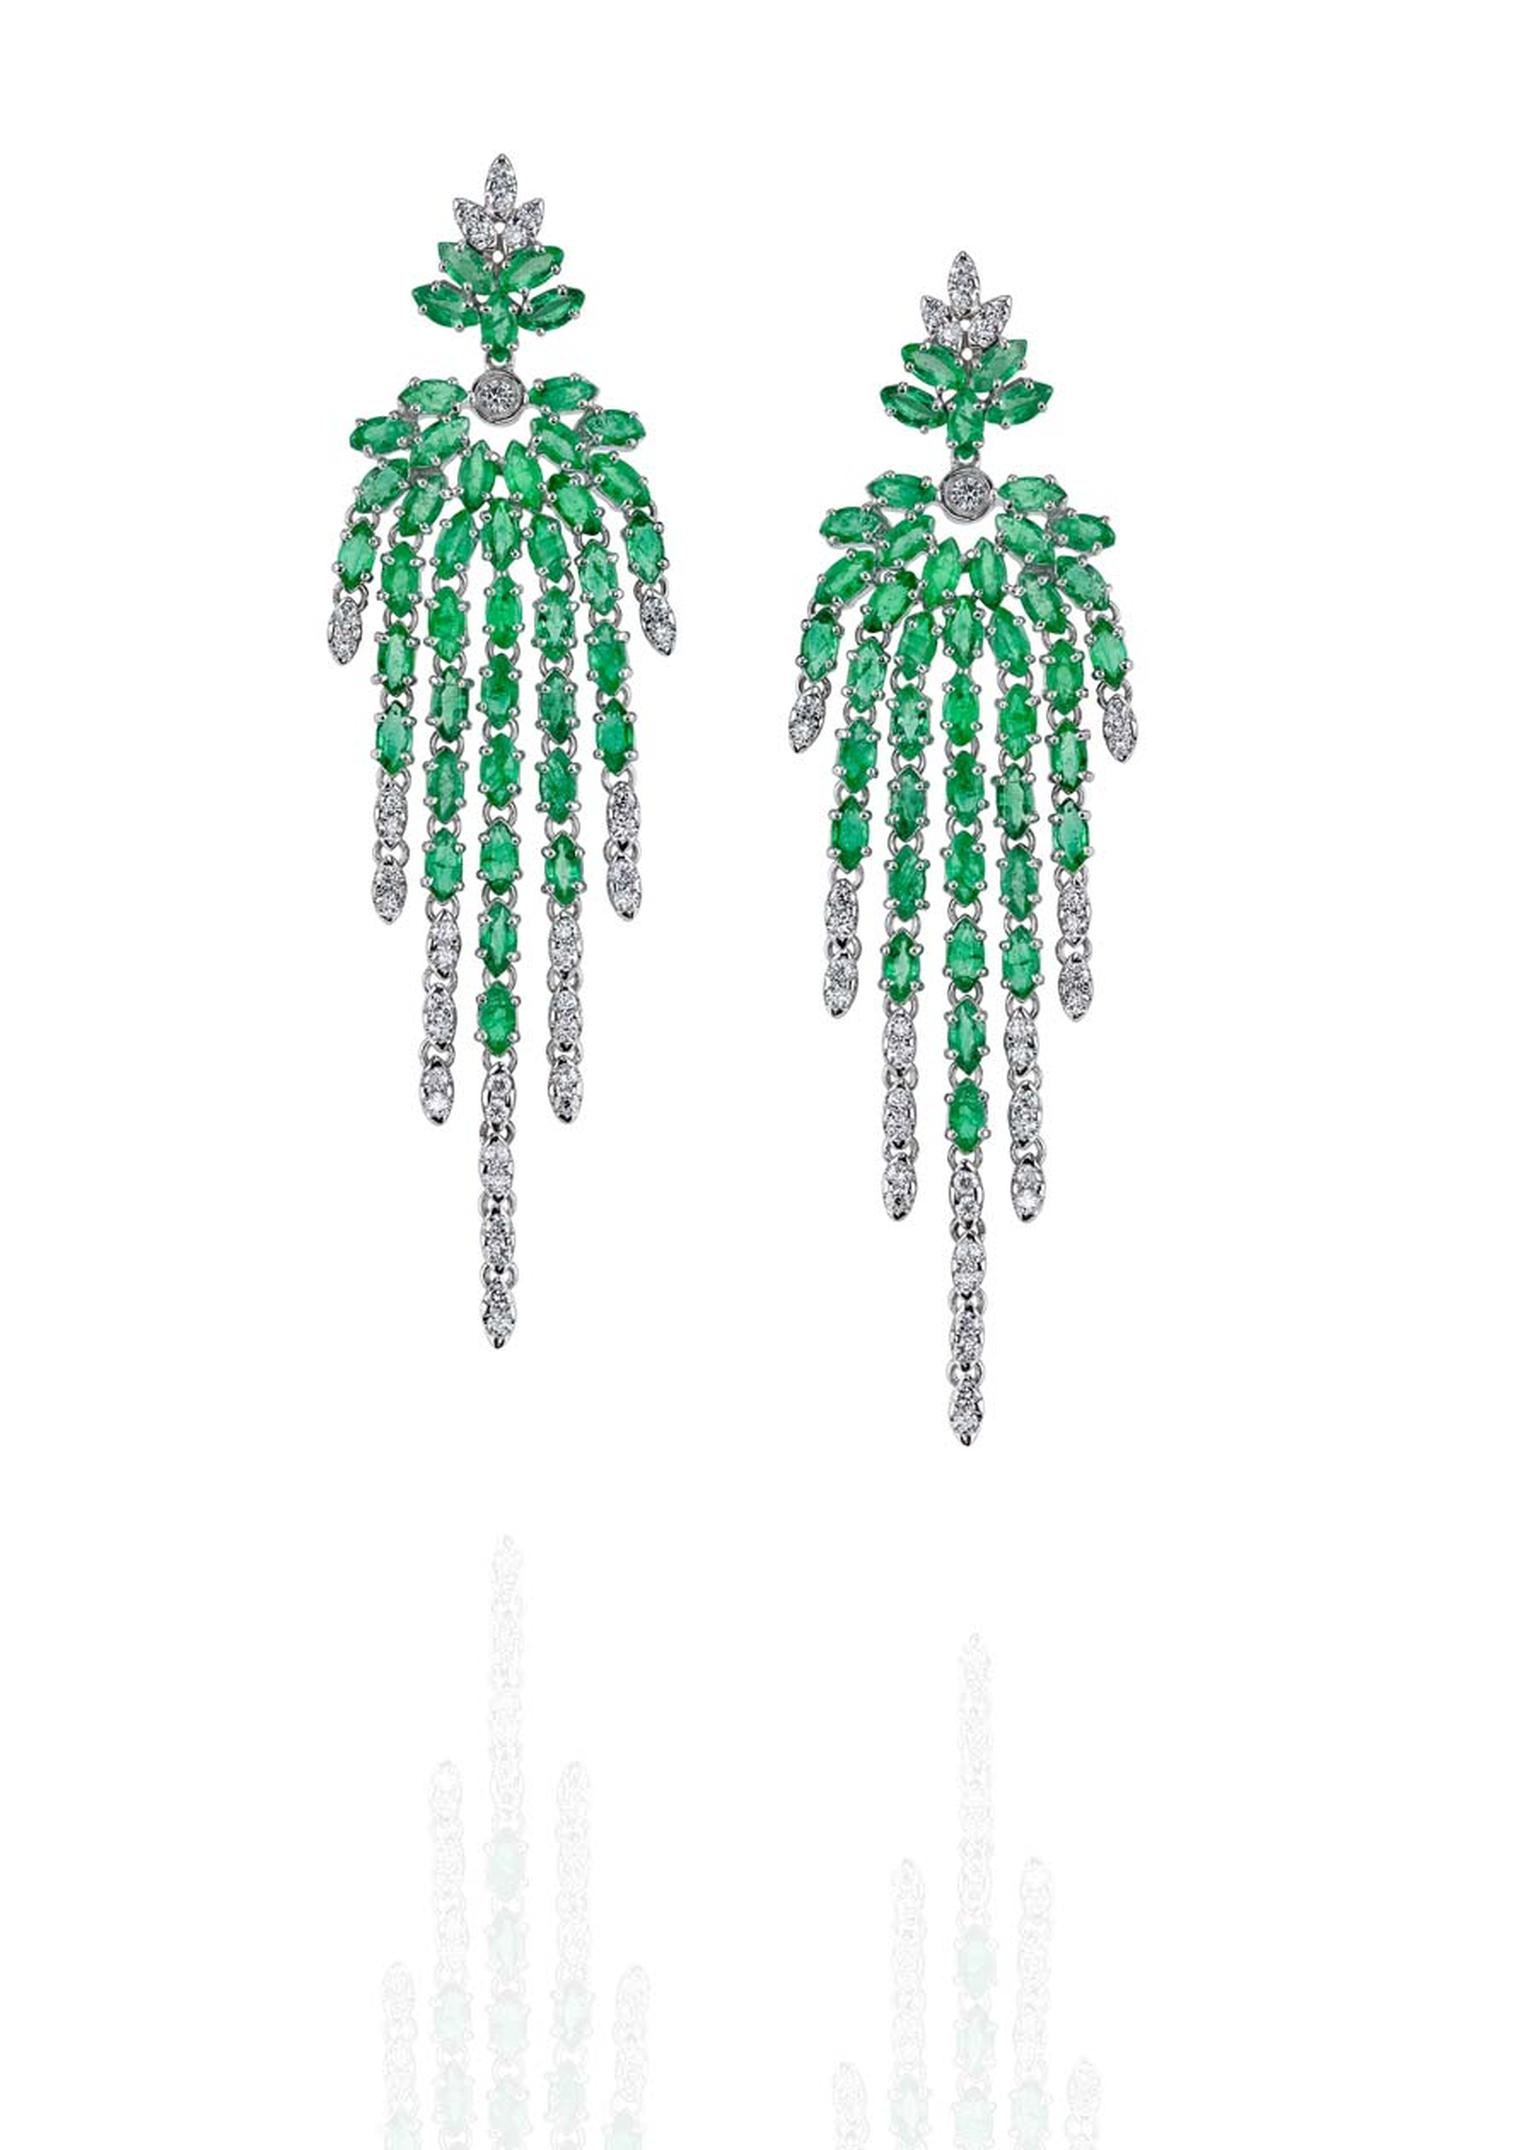 Carla Amorim Exstase earrings with emeralds and diamonds.